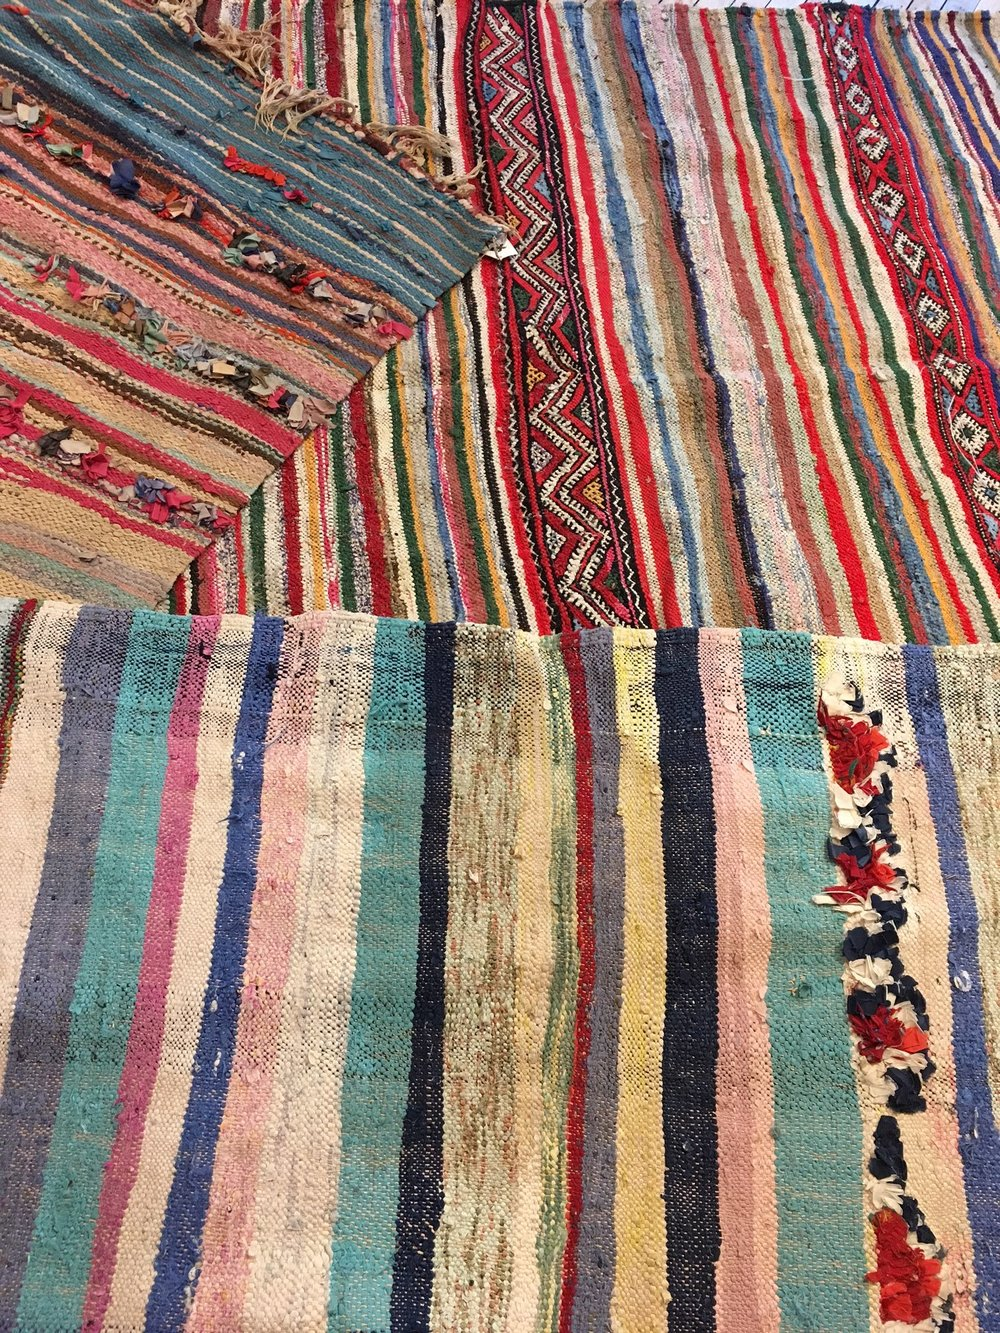 Flat weave Boucherouite rugs. Priced from $75-250.